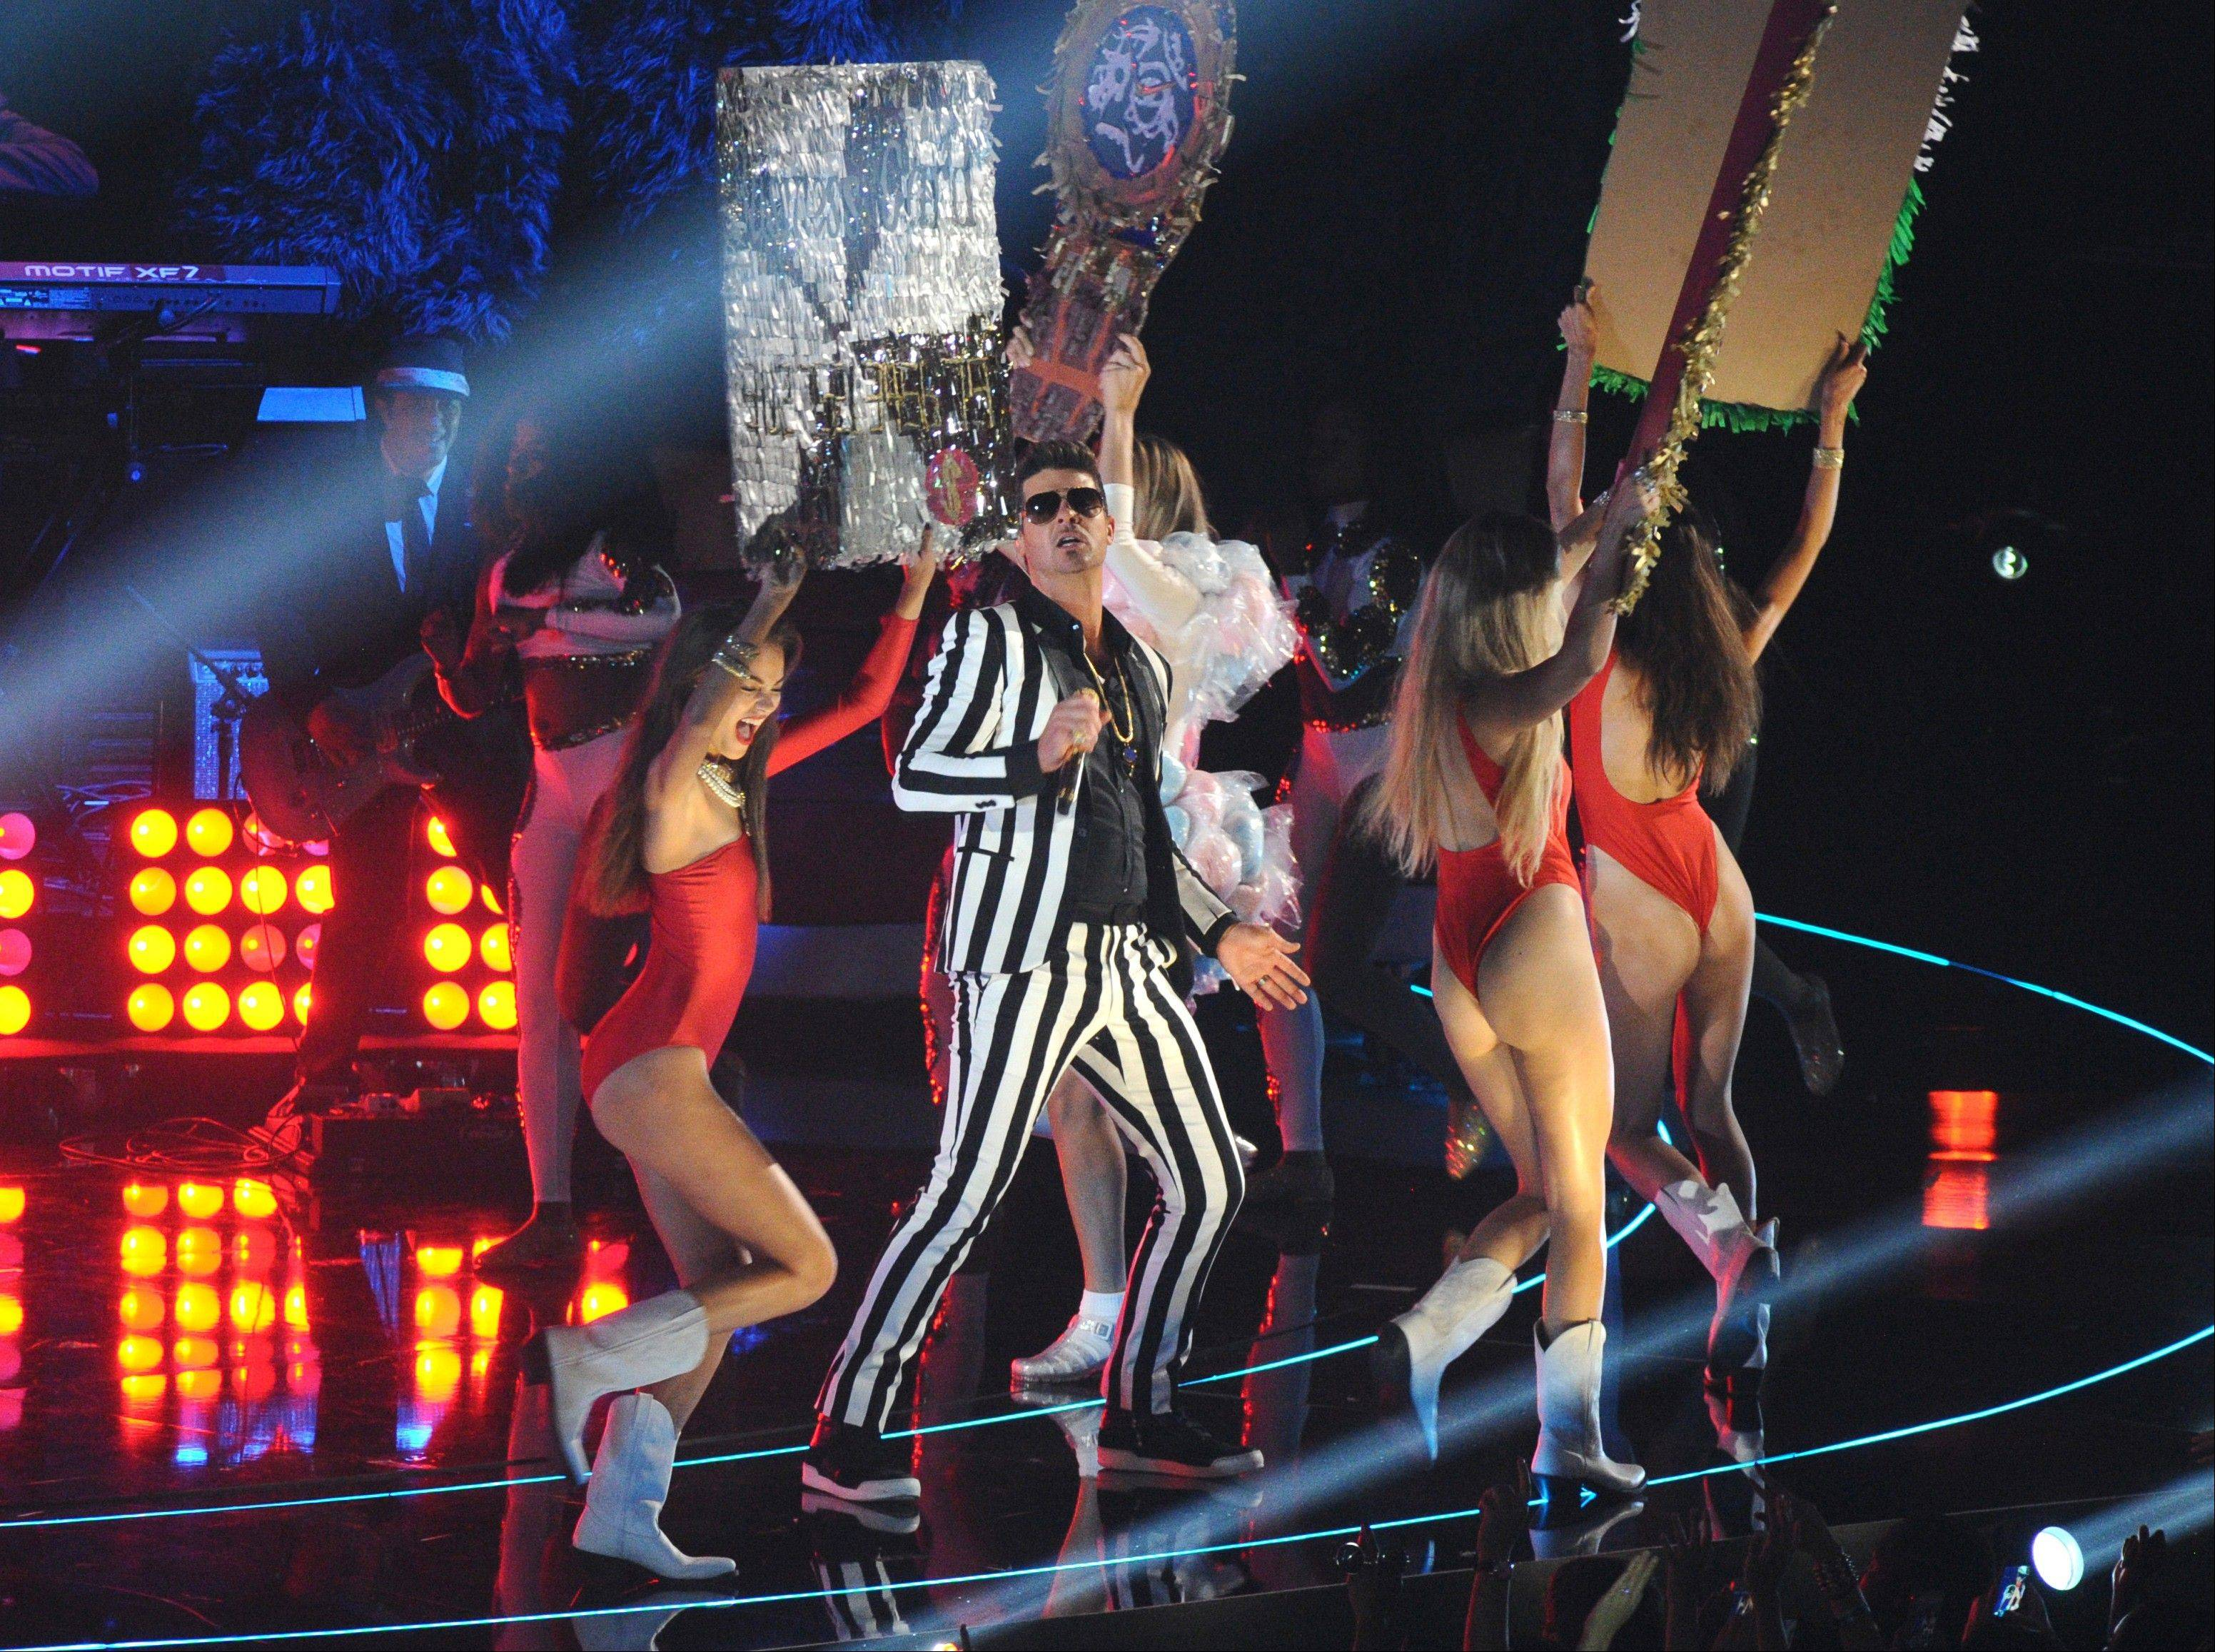 Robin Thicke performs at the MTV Video Music Awards on Sunday, Aug. 25, 2013, at the Barclays Center in the Brooklyn borough of New York.